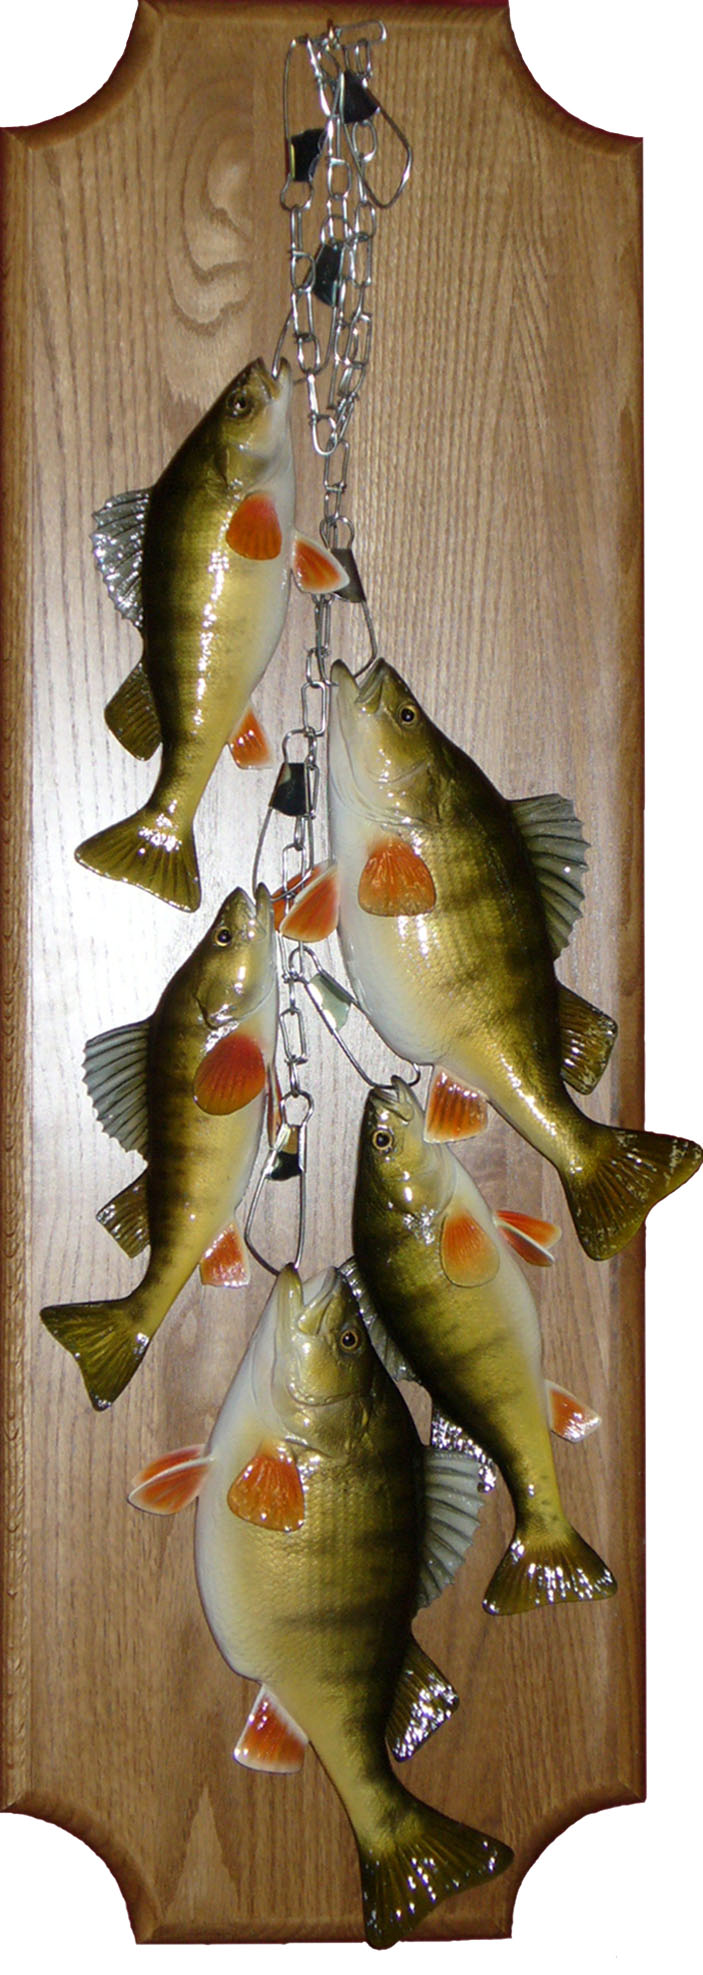 Stringer of perch replicas